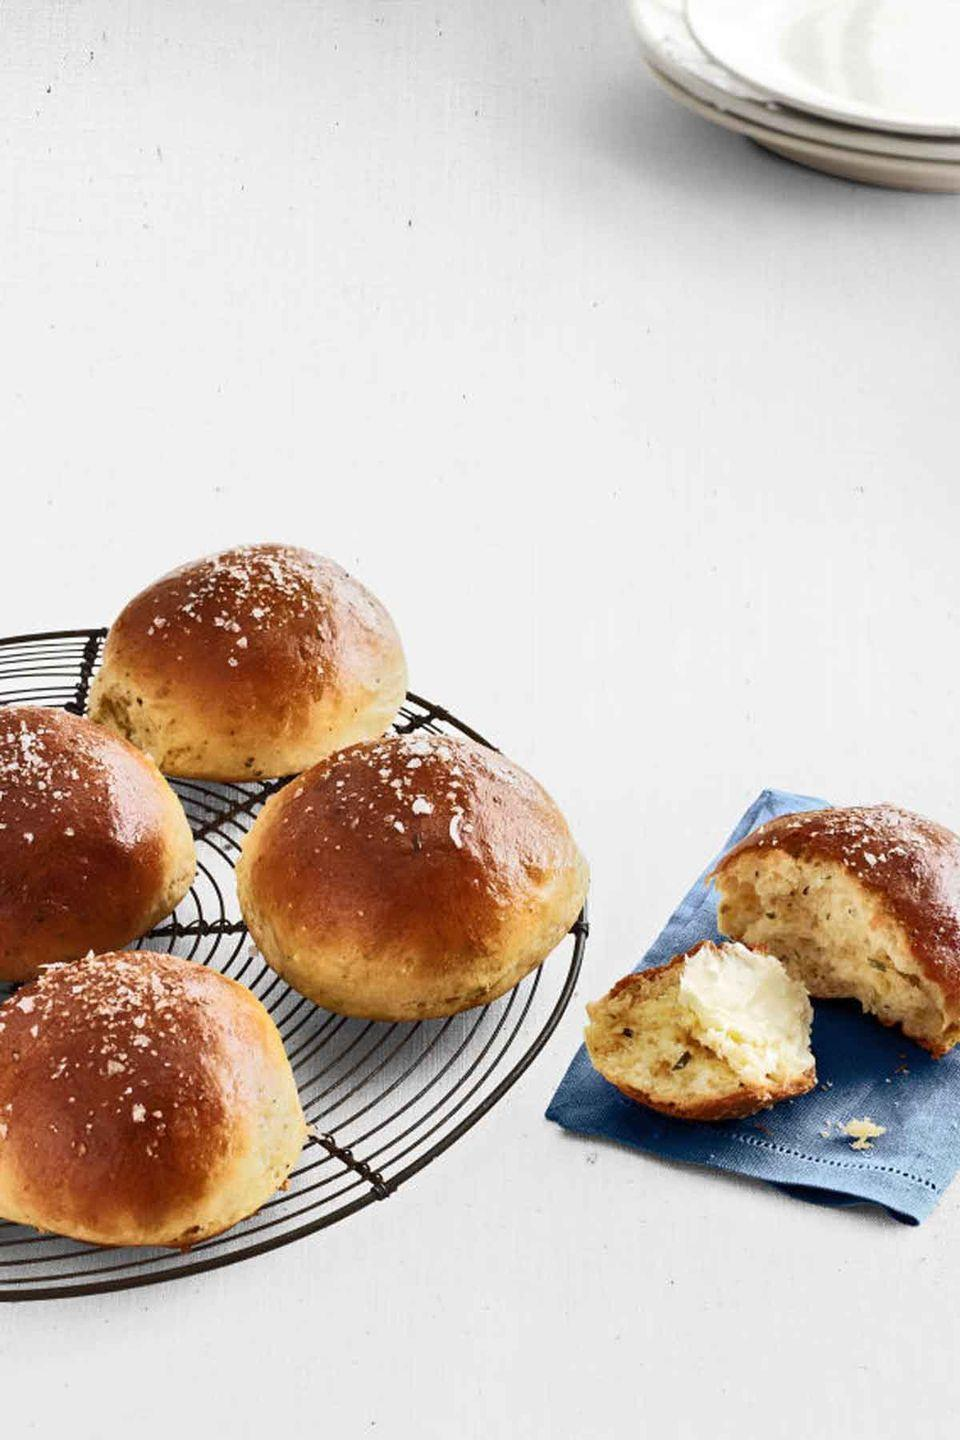 """<p>The fresh herbs are what make these rich, buttery brioche rolls taste so good. </p><p><em><strong><a href=""""https://www.womansday.com/food-recipes/food-drinks/recipes/a39889/rosemary-brioche-rolls-recipe-clx0414/"""" rel=""""nofollow noopener"""" target=""""_blank"""" data-ylk=""""slk:Get the Rosemary Brioche Rolls recipe"""" class=""""link rapid-noclick-resp"""">Get the Rosemary Brioche Rolls recipe</a>.</strong></em></p>"""